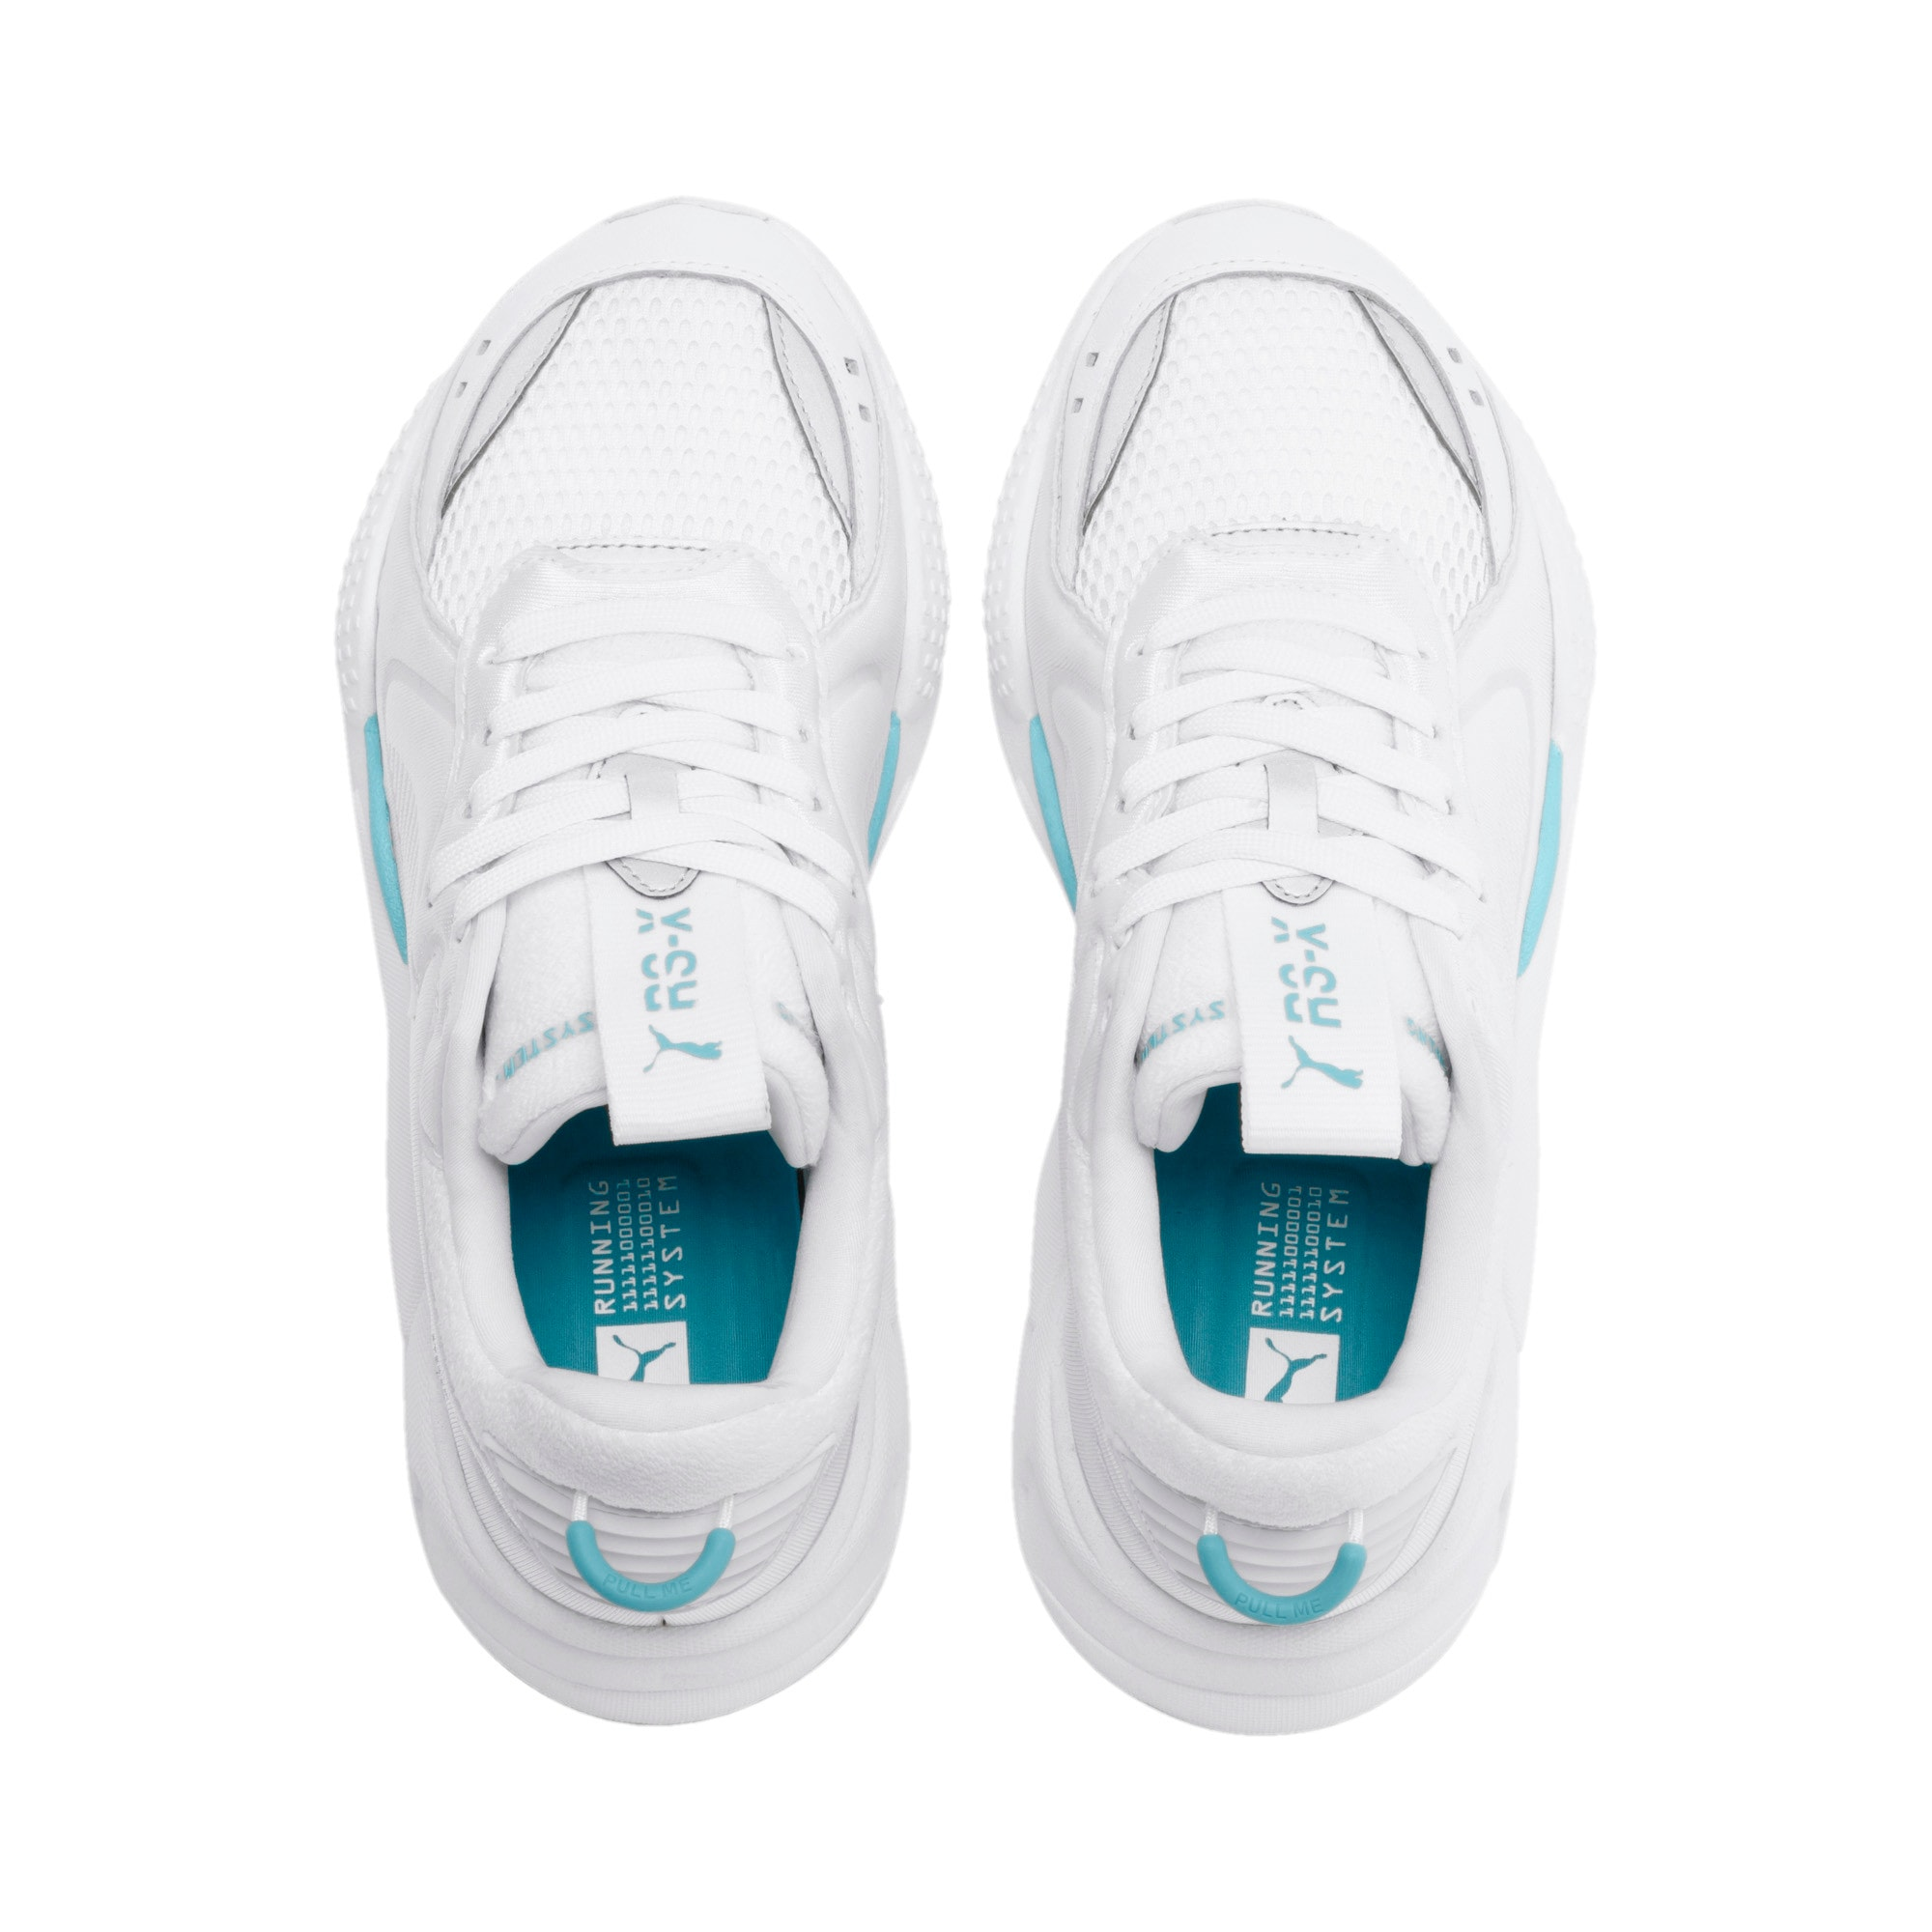 Thumbnail 8 of RS-X Softcase Trainers, Puma White-Milky Blue, medium